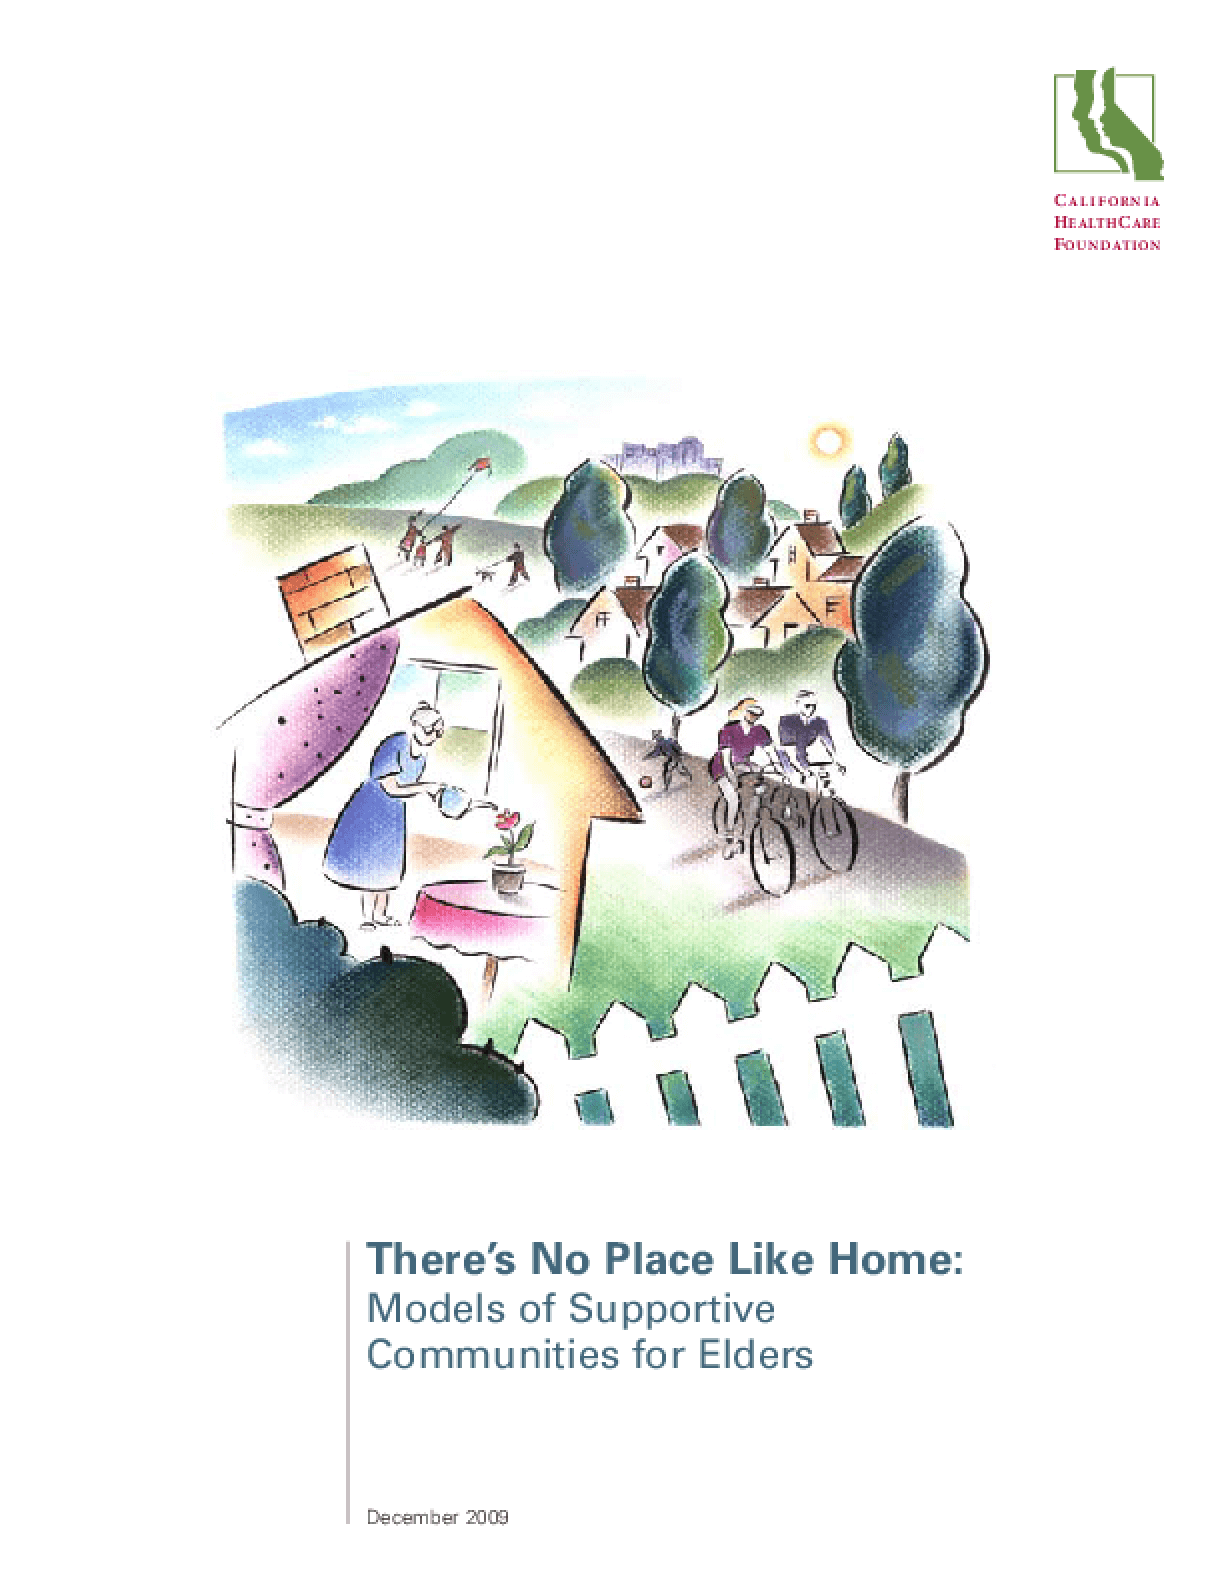 There's No Place Like Home: Models of Supportive Communities for Elders